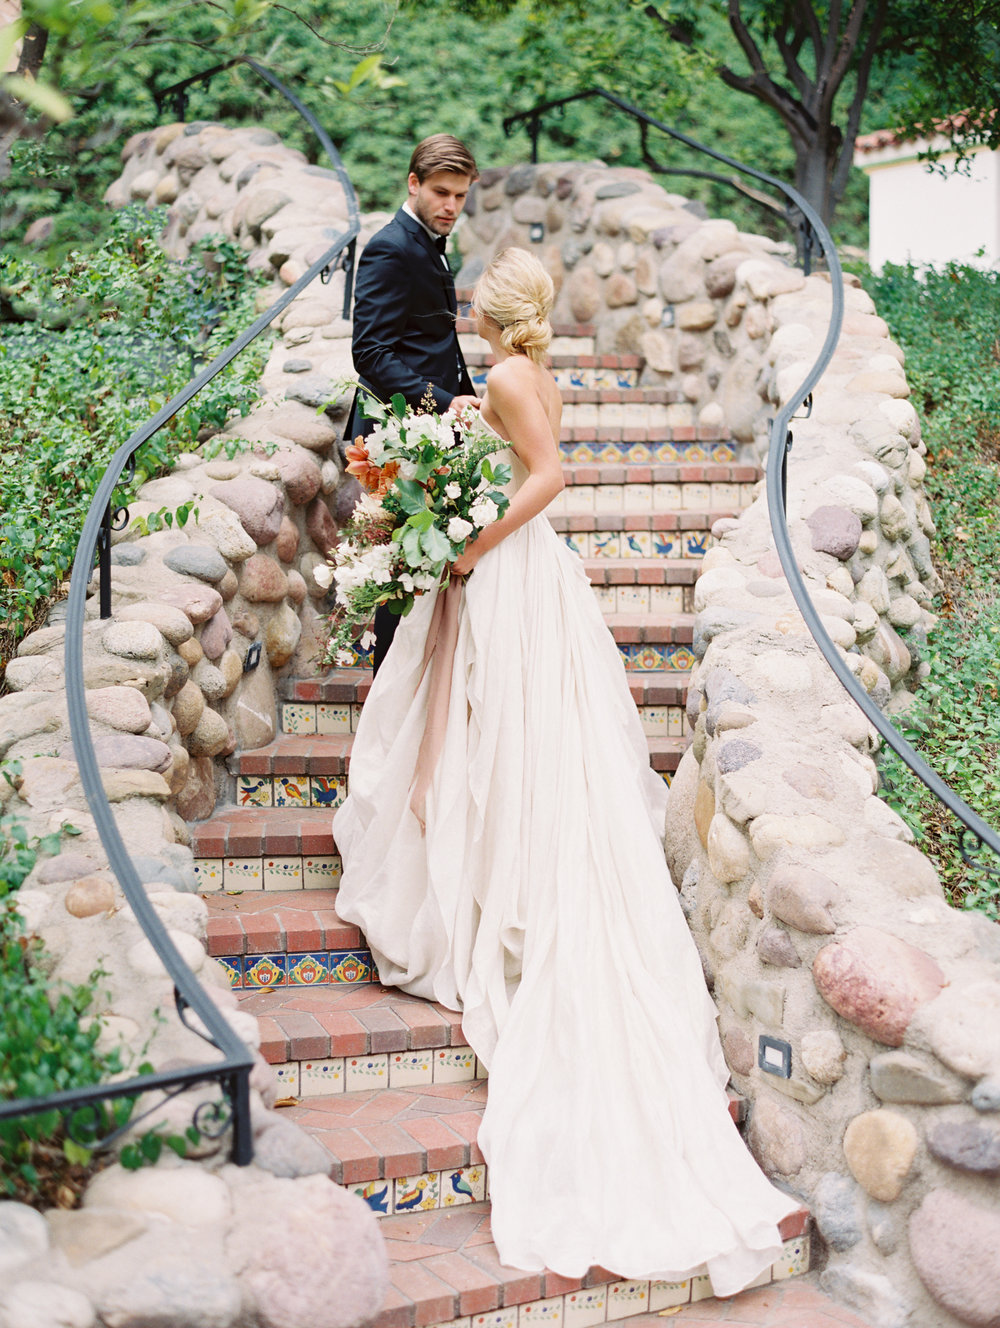 Jon Cu95- Rancho-Las-Lomas-california-film-wedding-bride-groom-spanish-peach.jpg